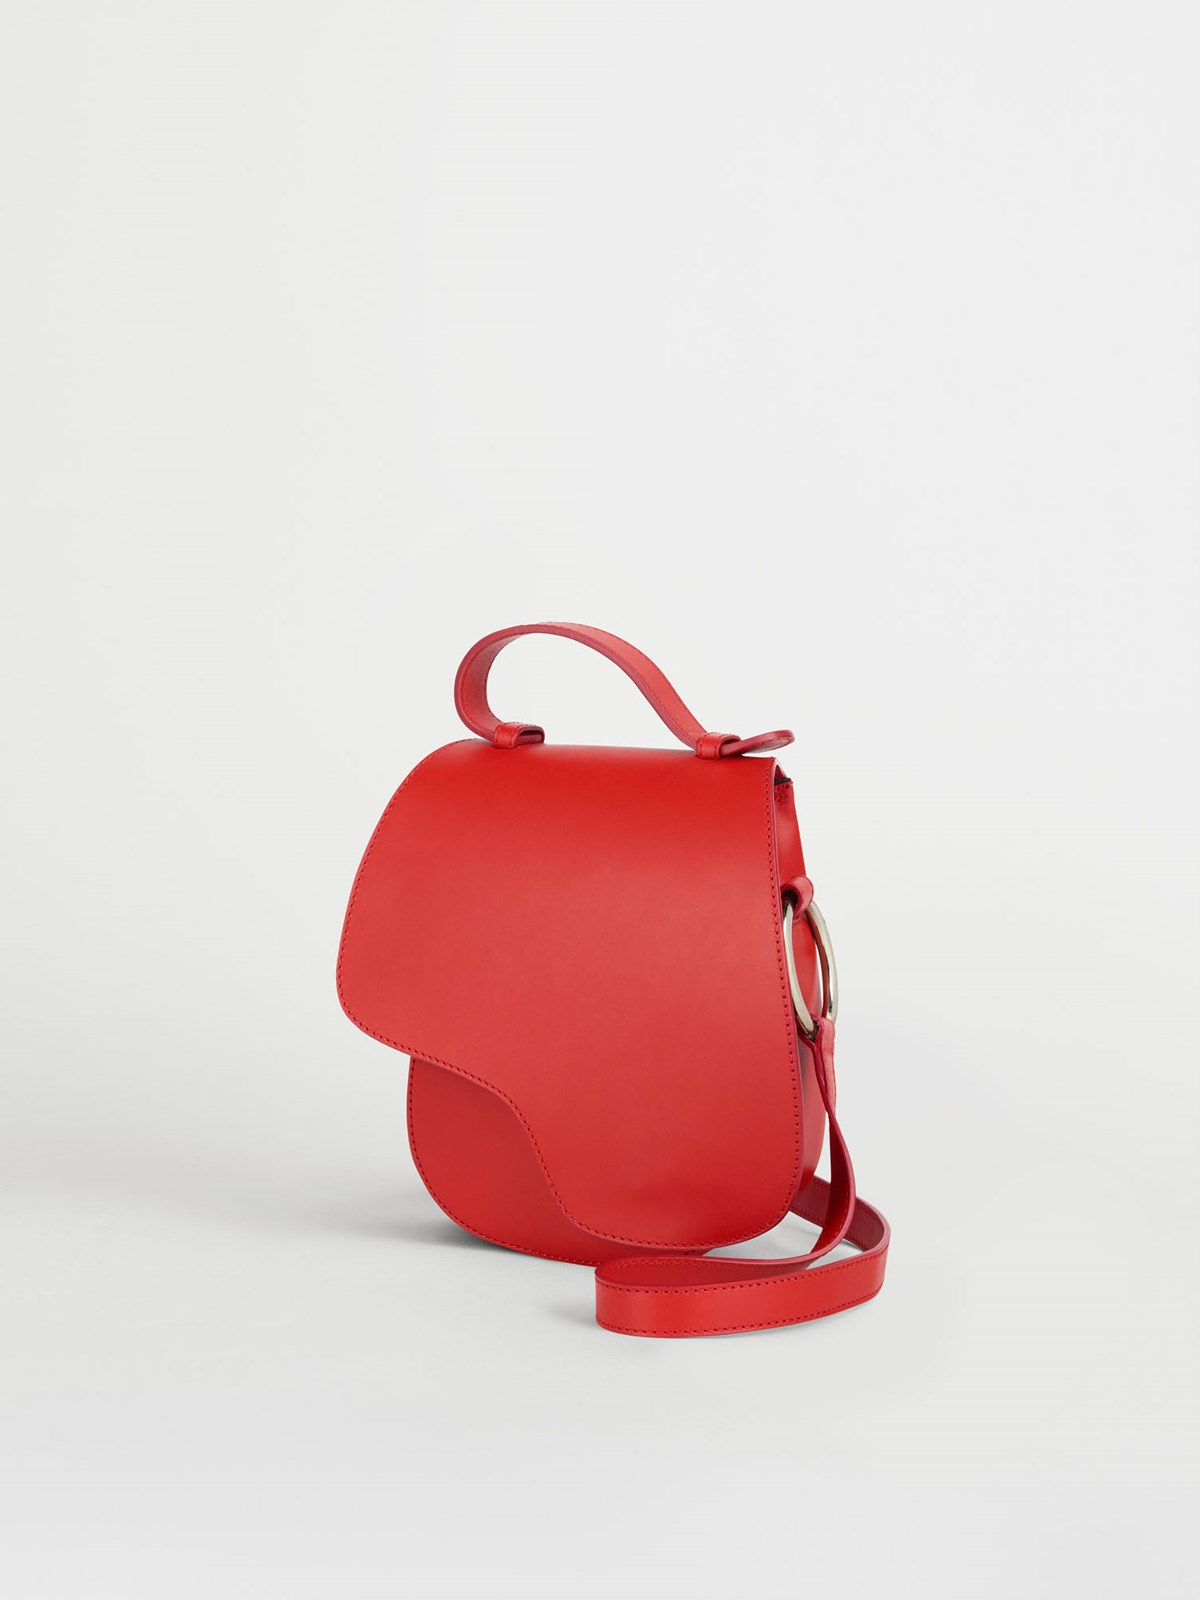 Carrara Tomato Red Crossbody bag